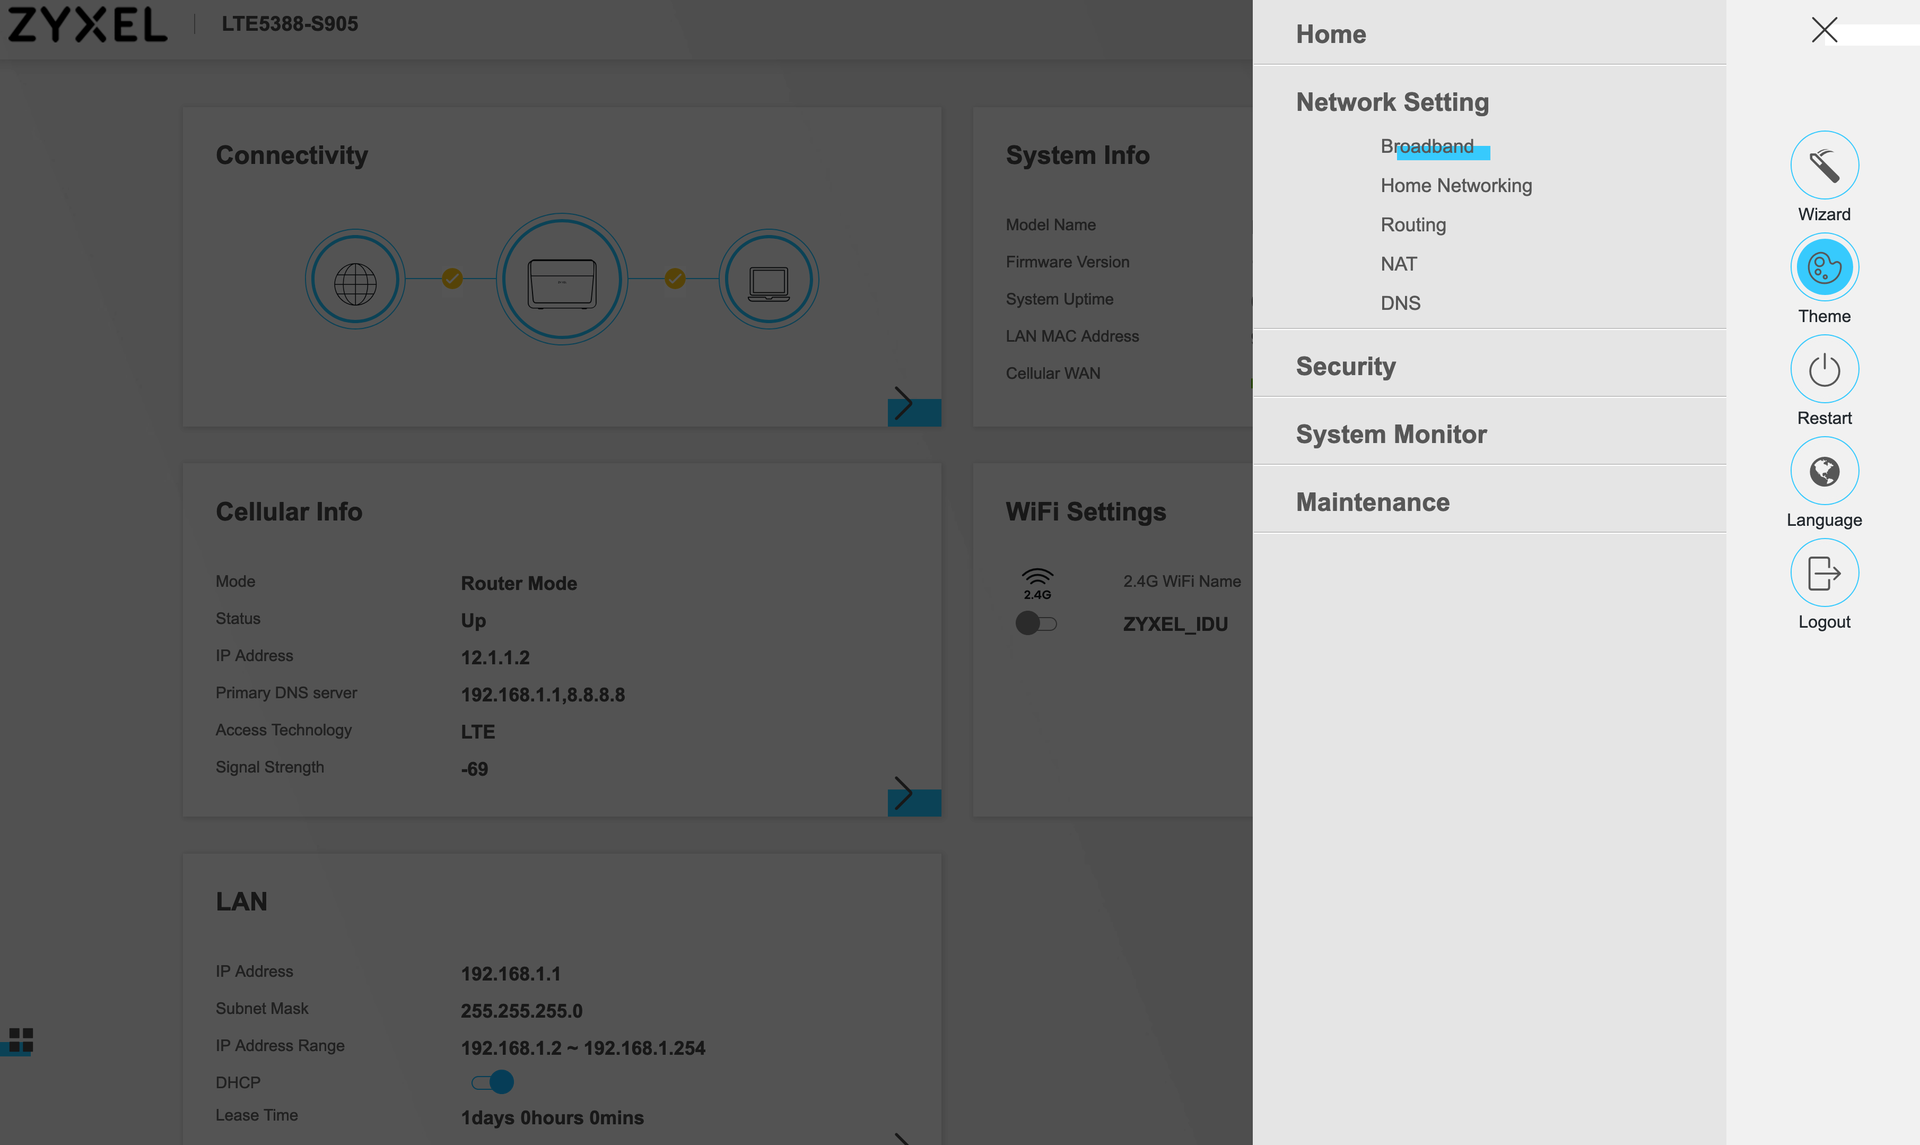 Step 5: Configuring Zyxel Indoor CPE on the Celona CBRS network